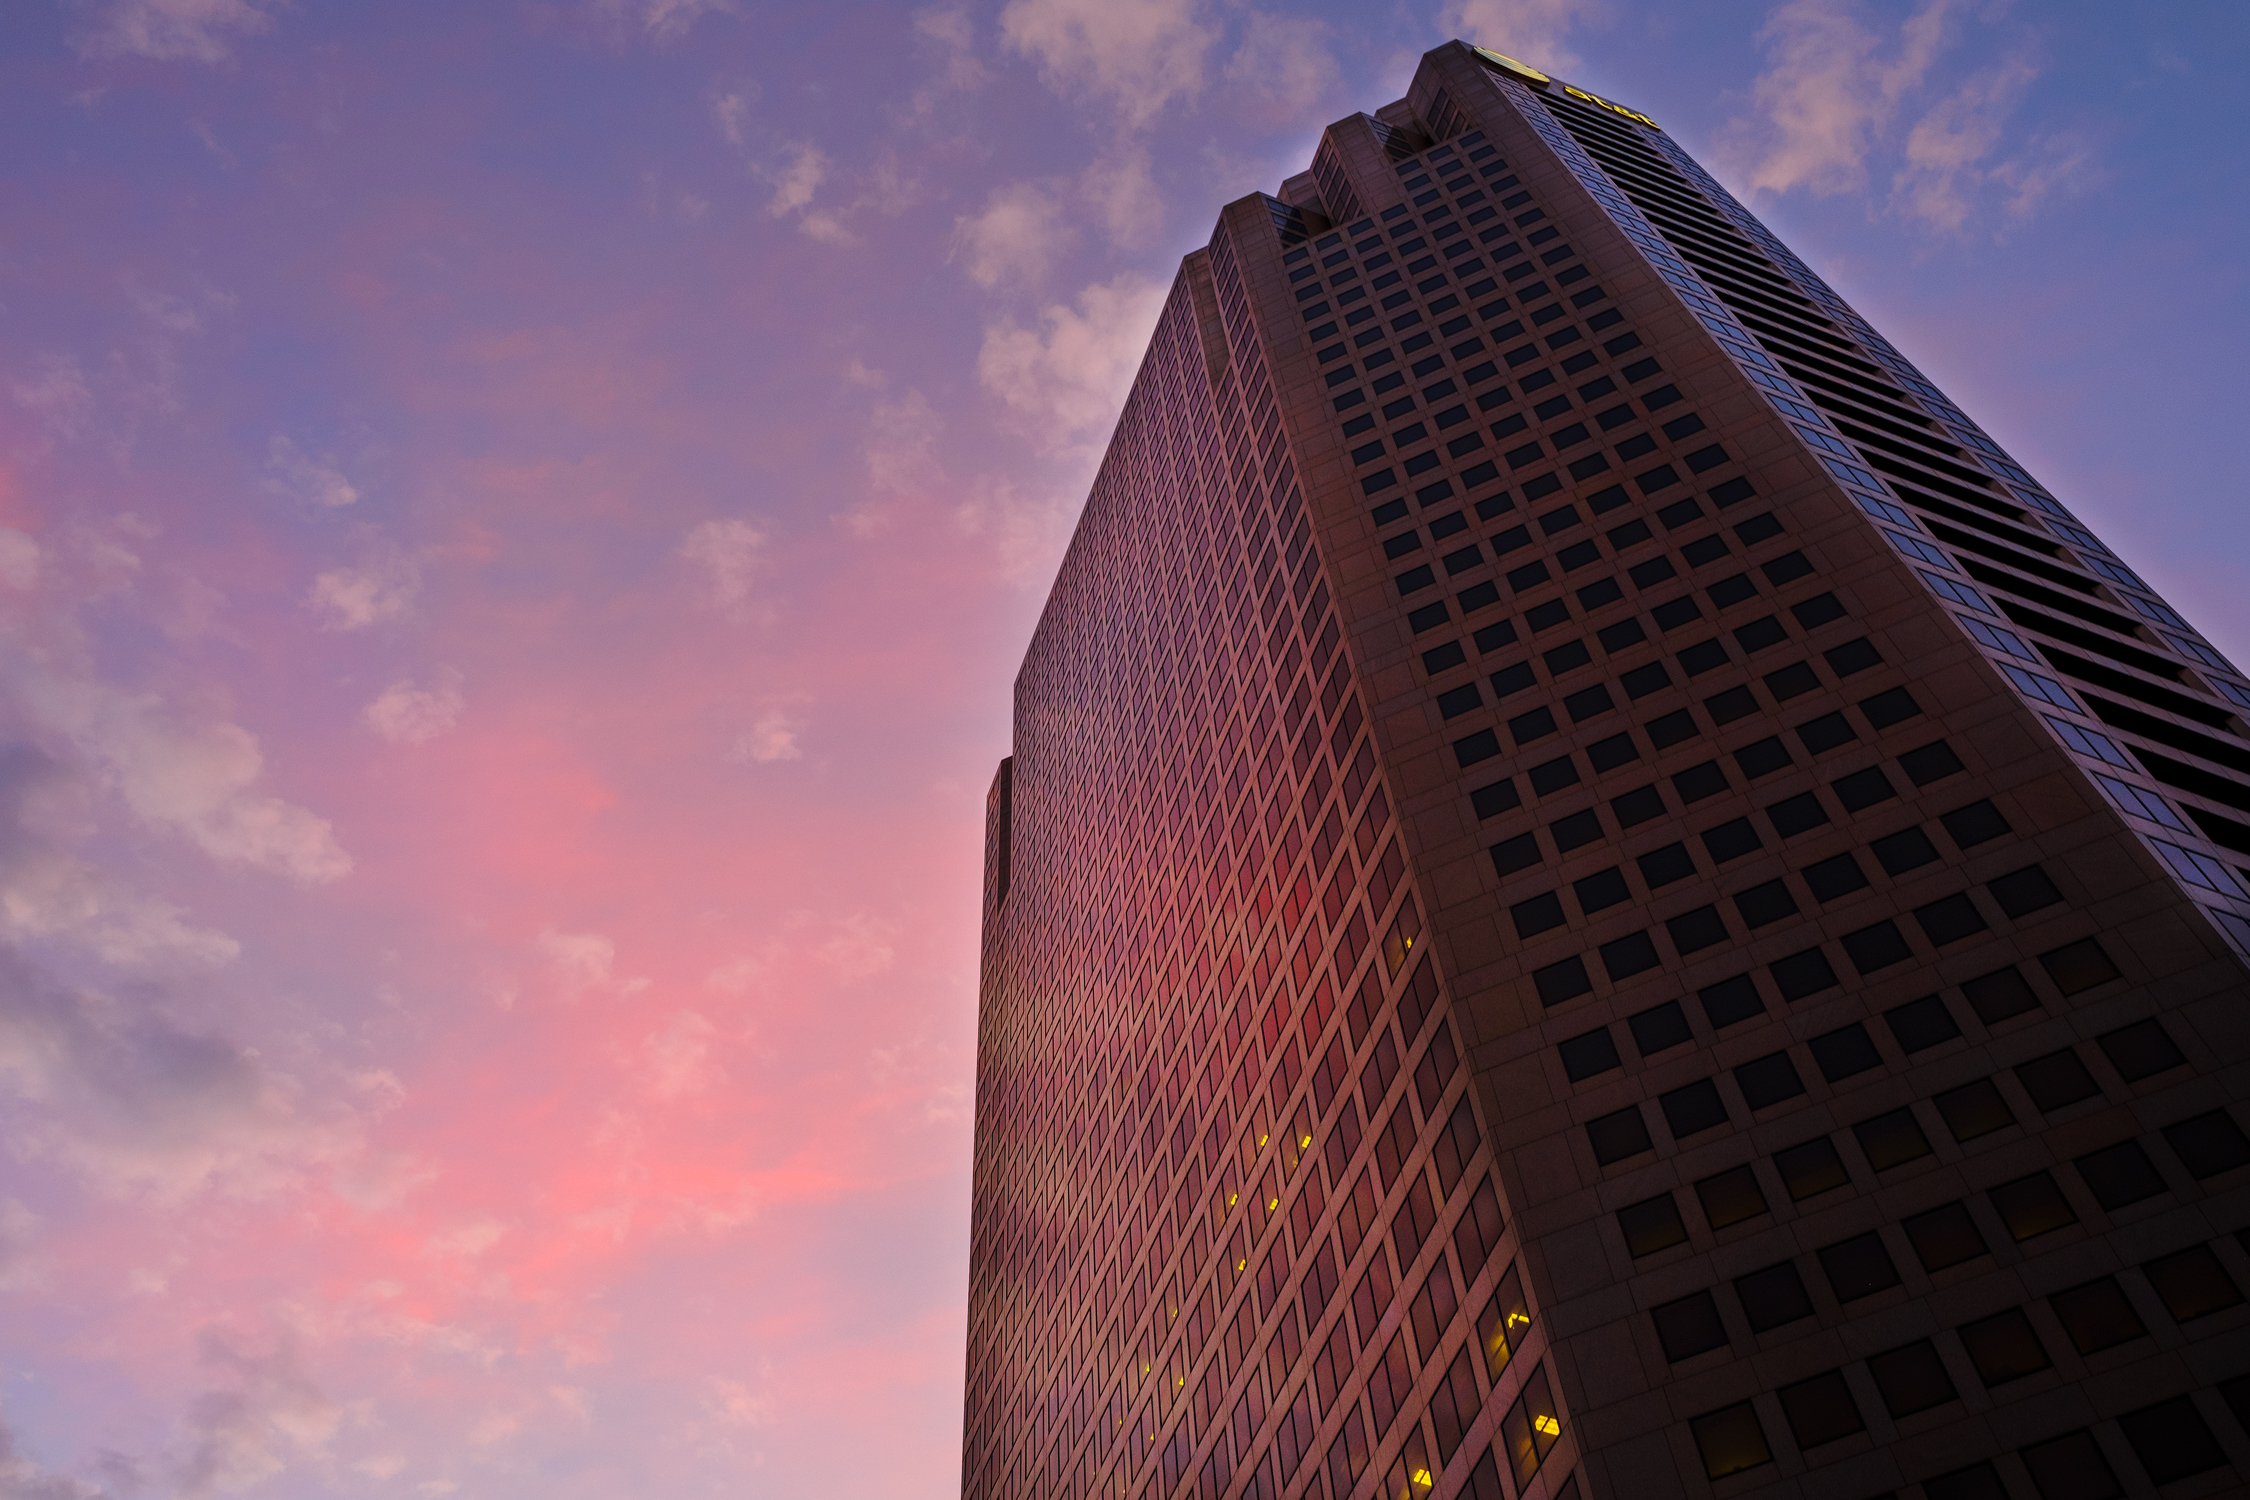 Twilight clouds surround the AT&T Tower. Fuji X-Pro 2 and a Fujinon 16-55mm f2.8.